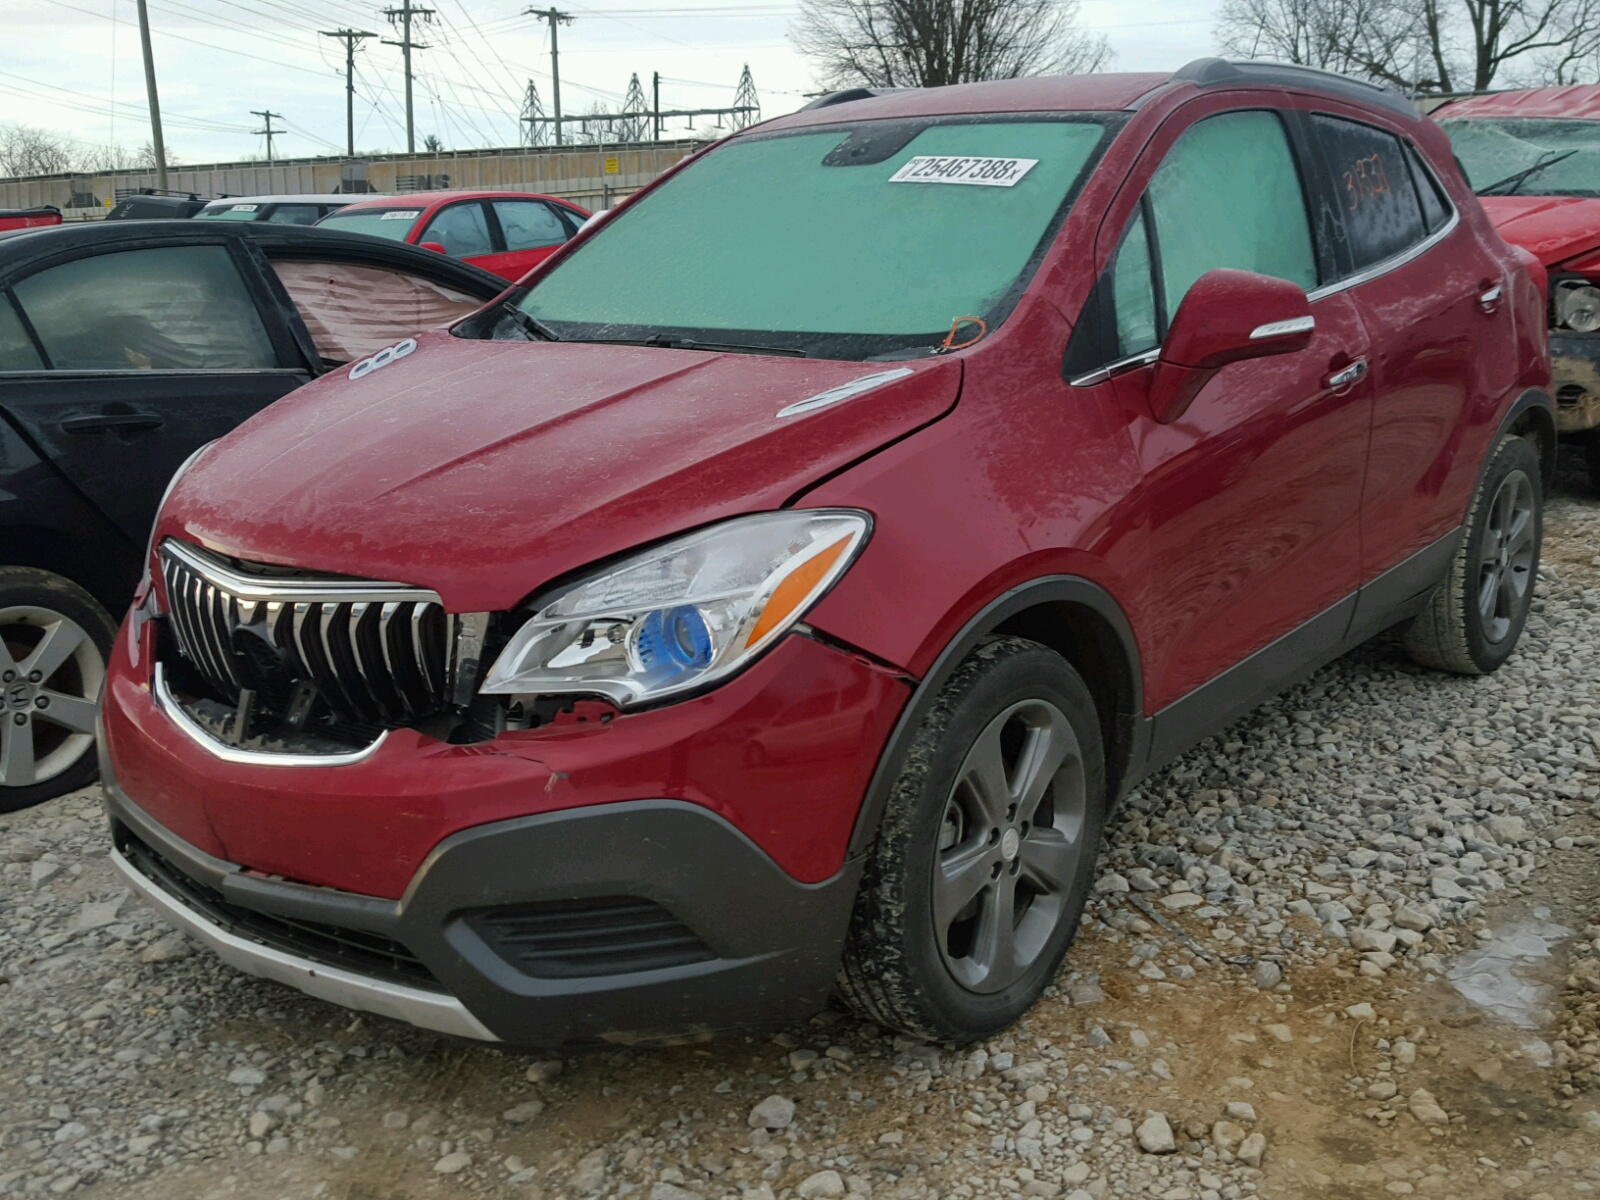 copart red view sale in city buick auctions for encore lot carfinder ok cert on of salvage auto title right online en oklahoma